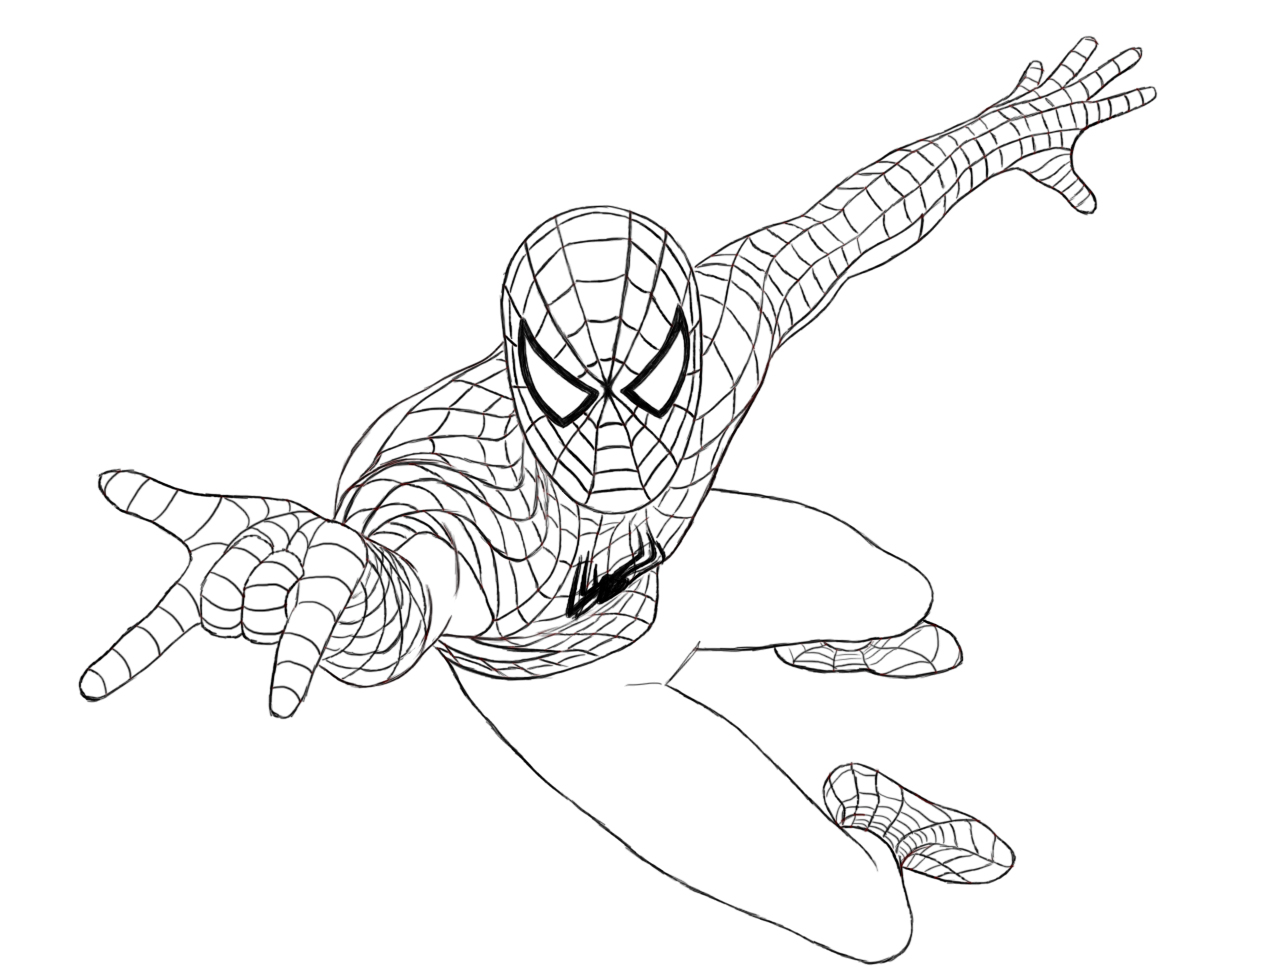 1280x973 Spider Man Drawing, Pencil, Sketch, Colorful, Realistic Art Images